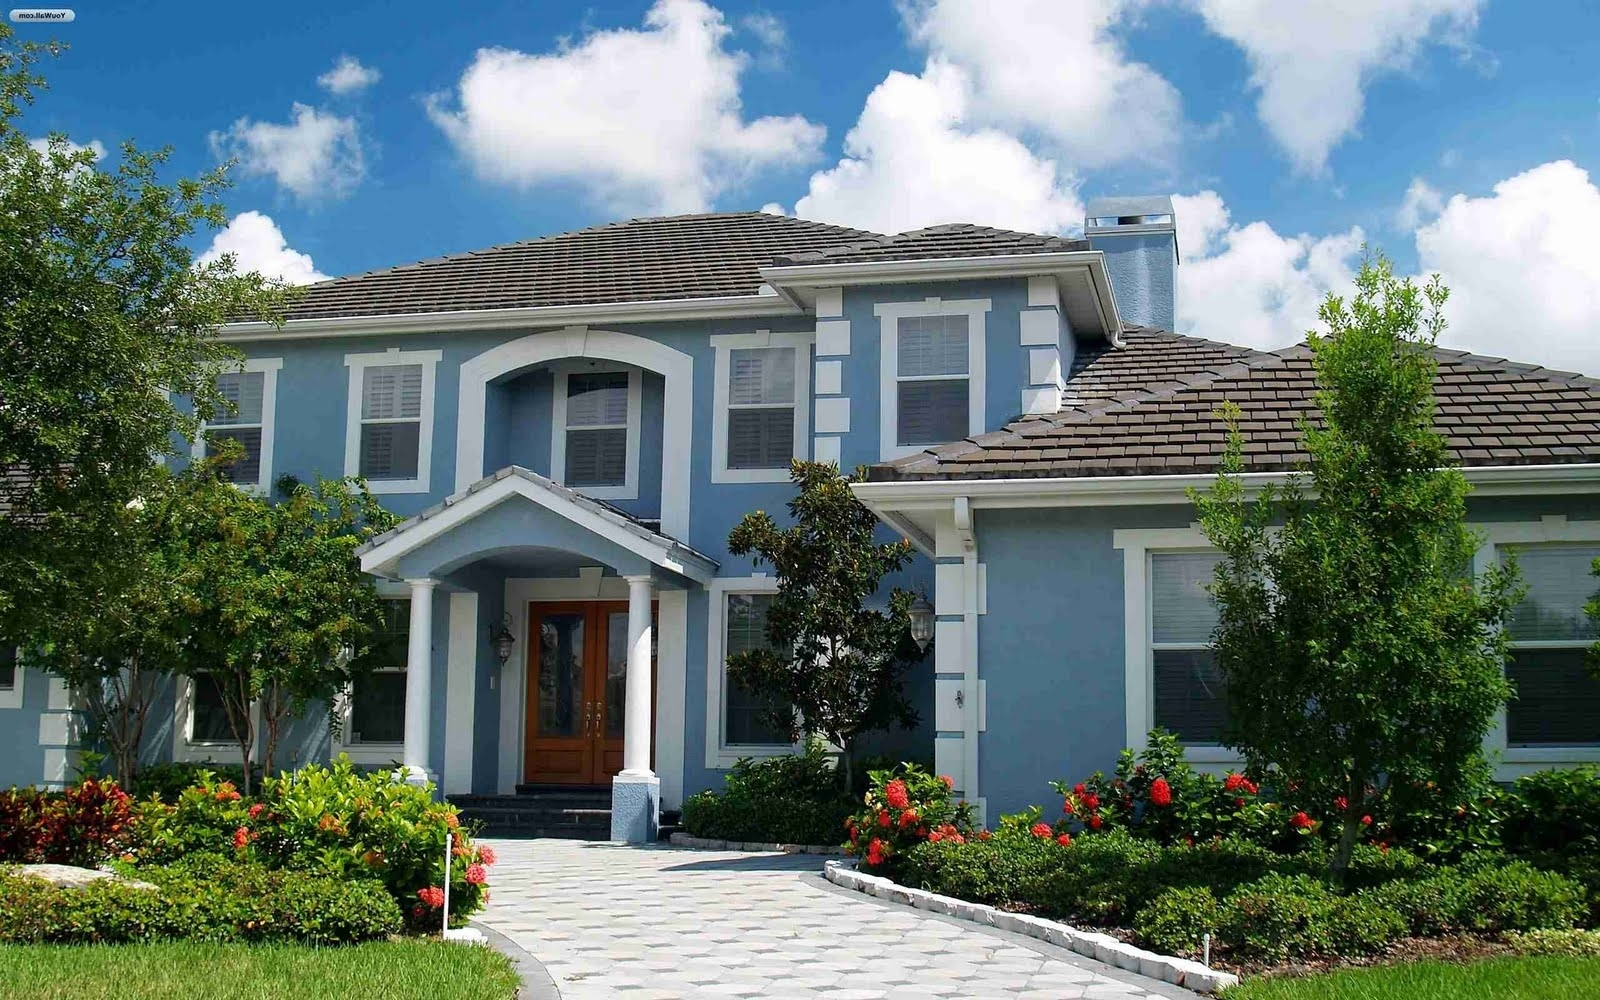 Light Blue House Exterior Paint Color (Image 6 of 12)